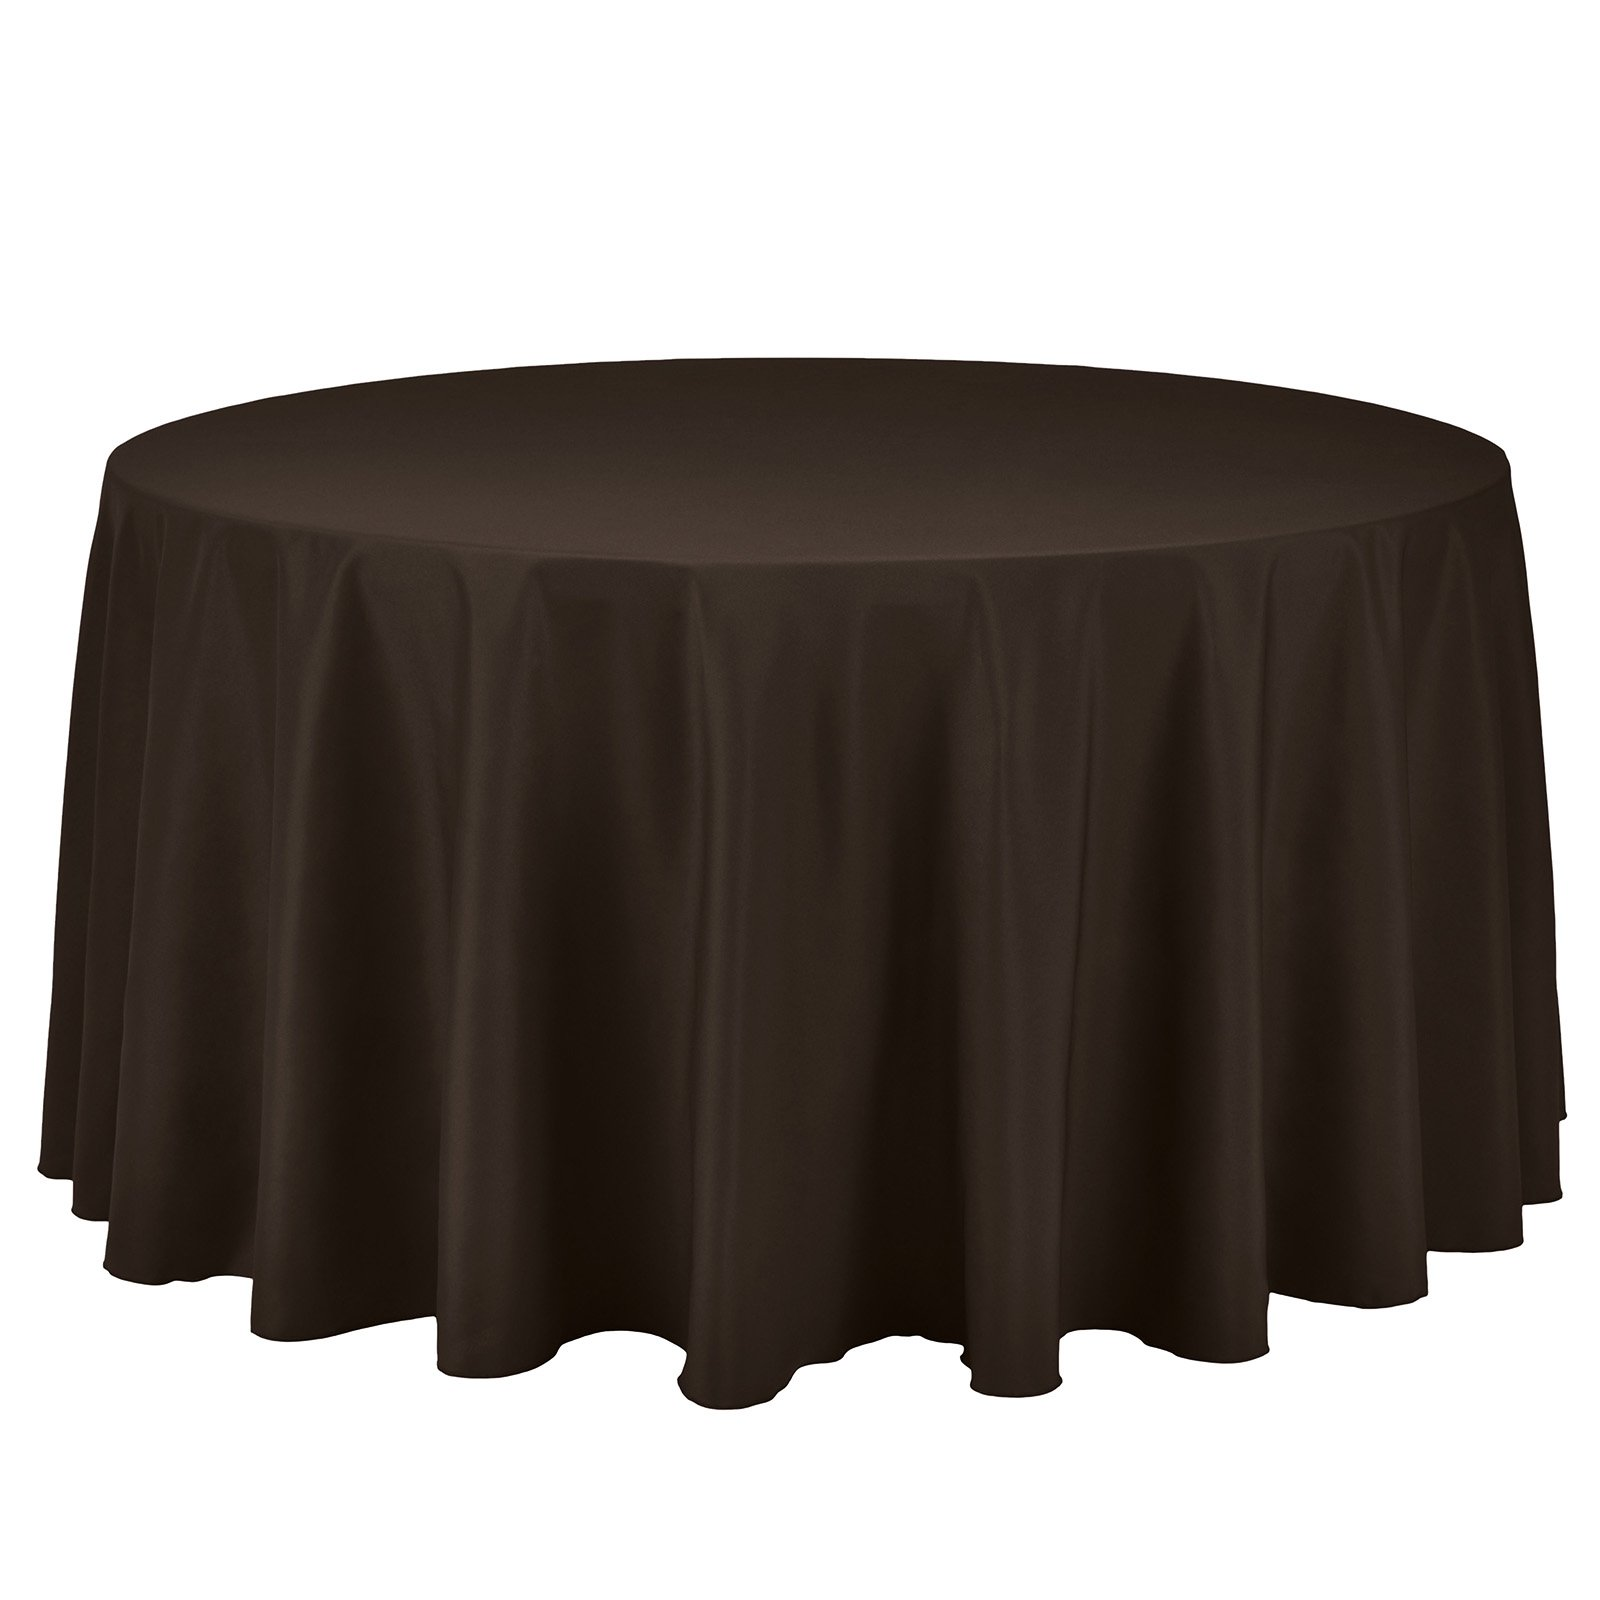 Remedios Round Tablecloth Solid Color Polyester Table Cloth for Bridal Shower Wedding Table – Wrinkle Free Dinner Tablecloth for Restaurant Party Banquet (Chocolate, 108 inch)